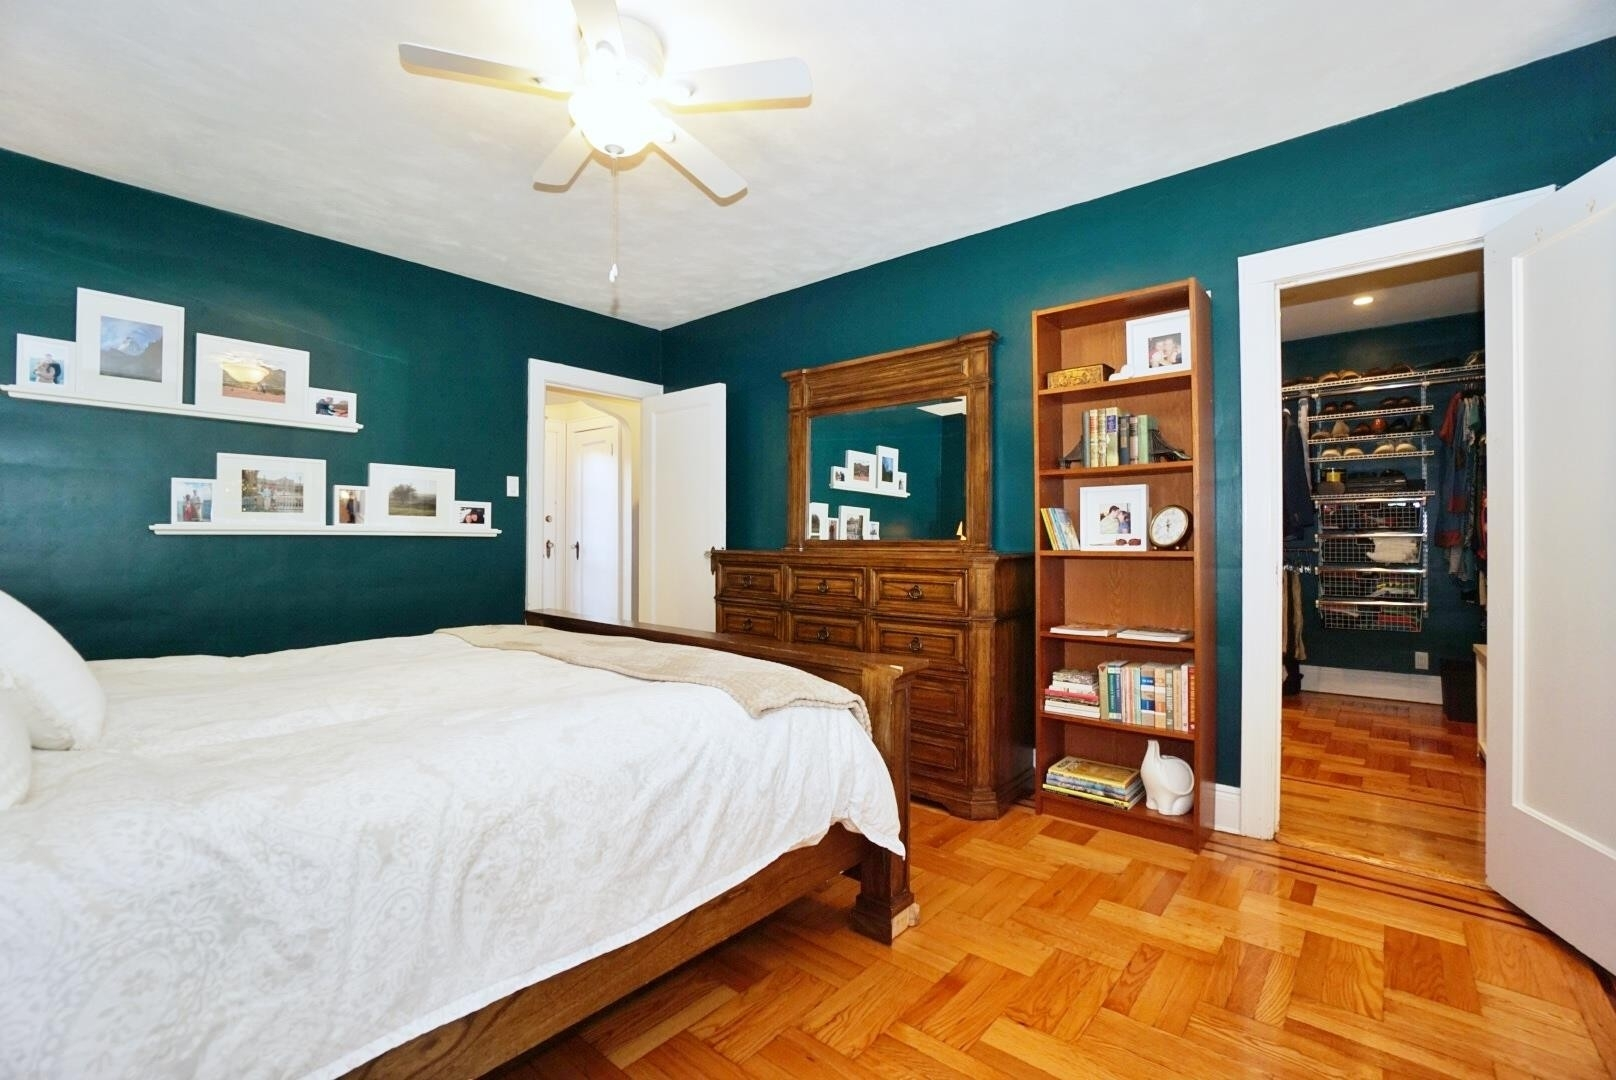 16. Single Family Townhouse for Sale at 1684 RYDER ST , TOWNHOUSE Marine Park, Brooklyn, NY 11234